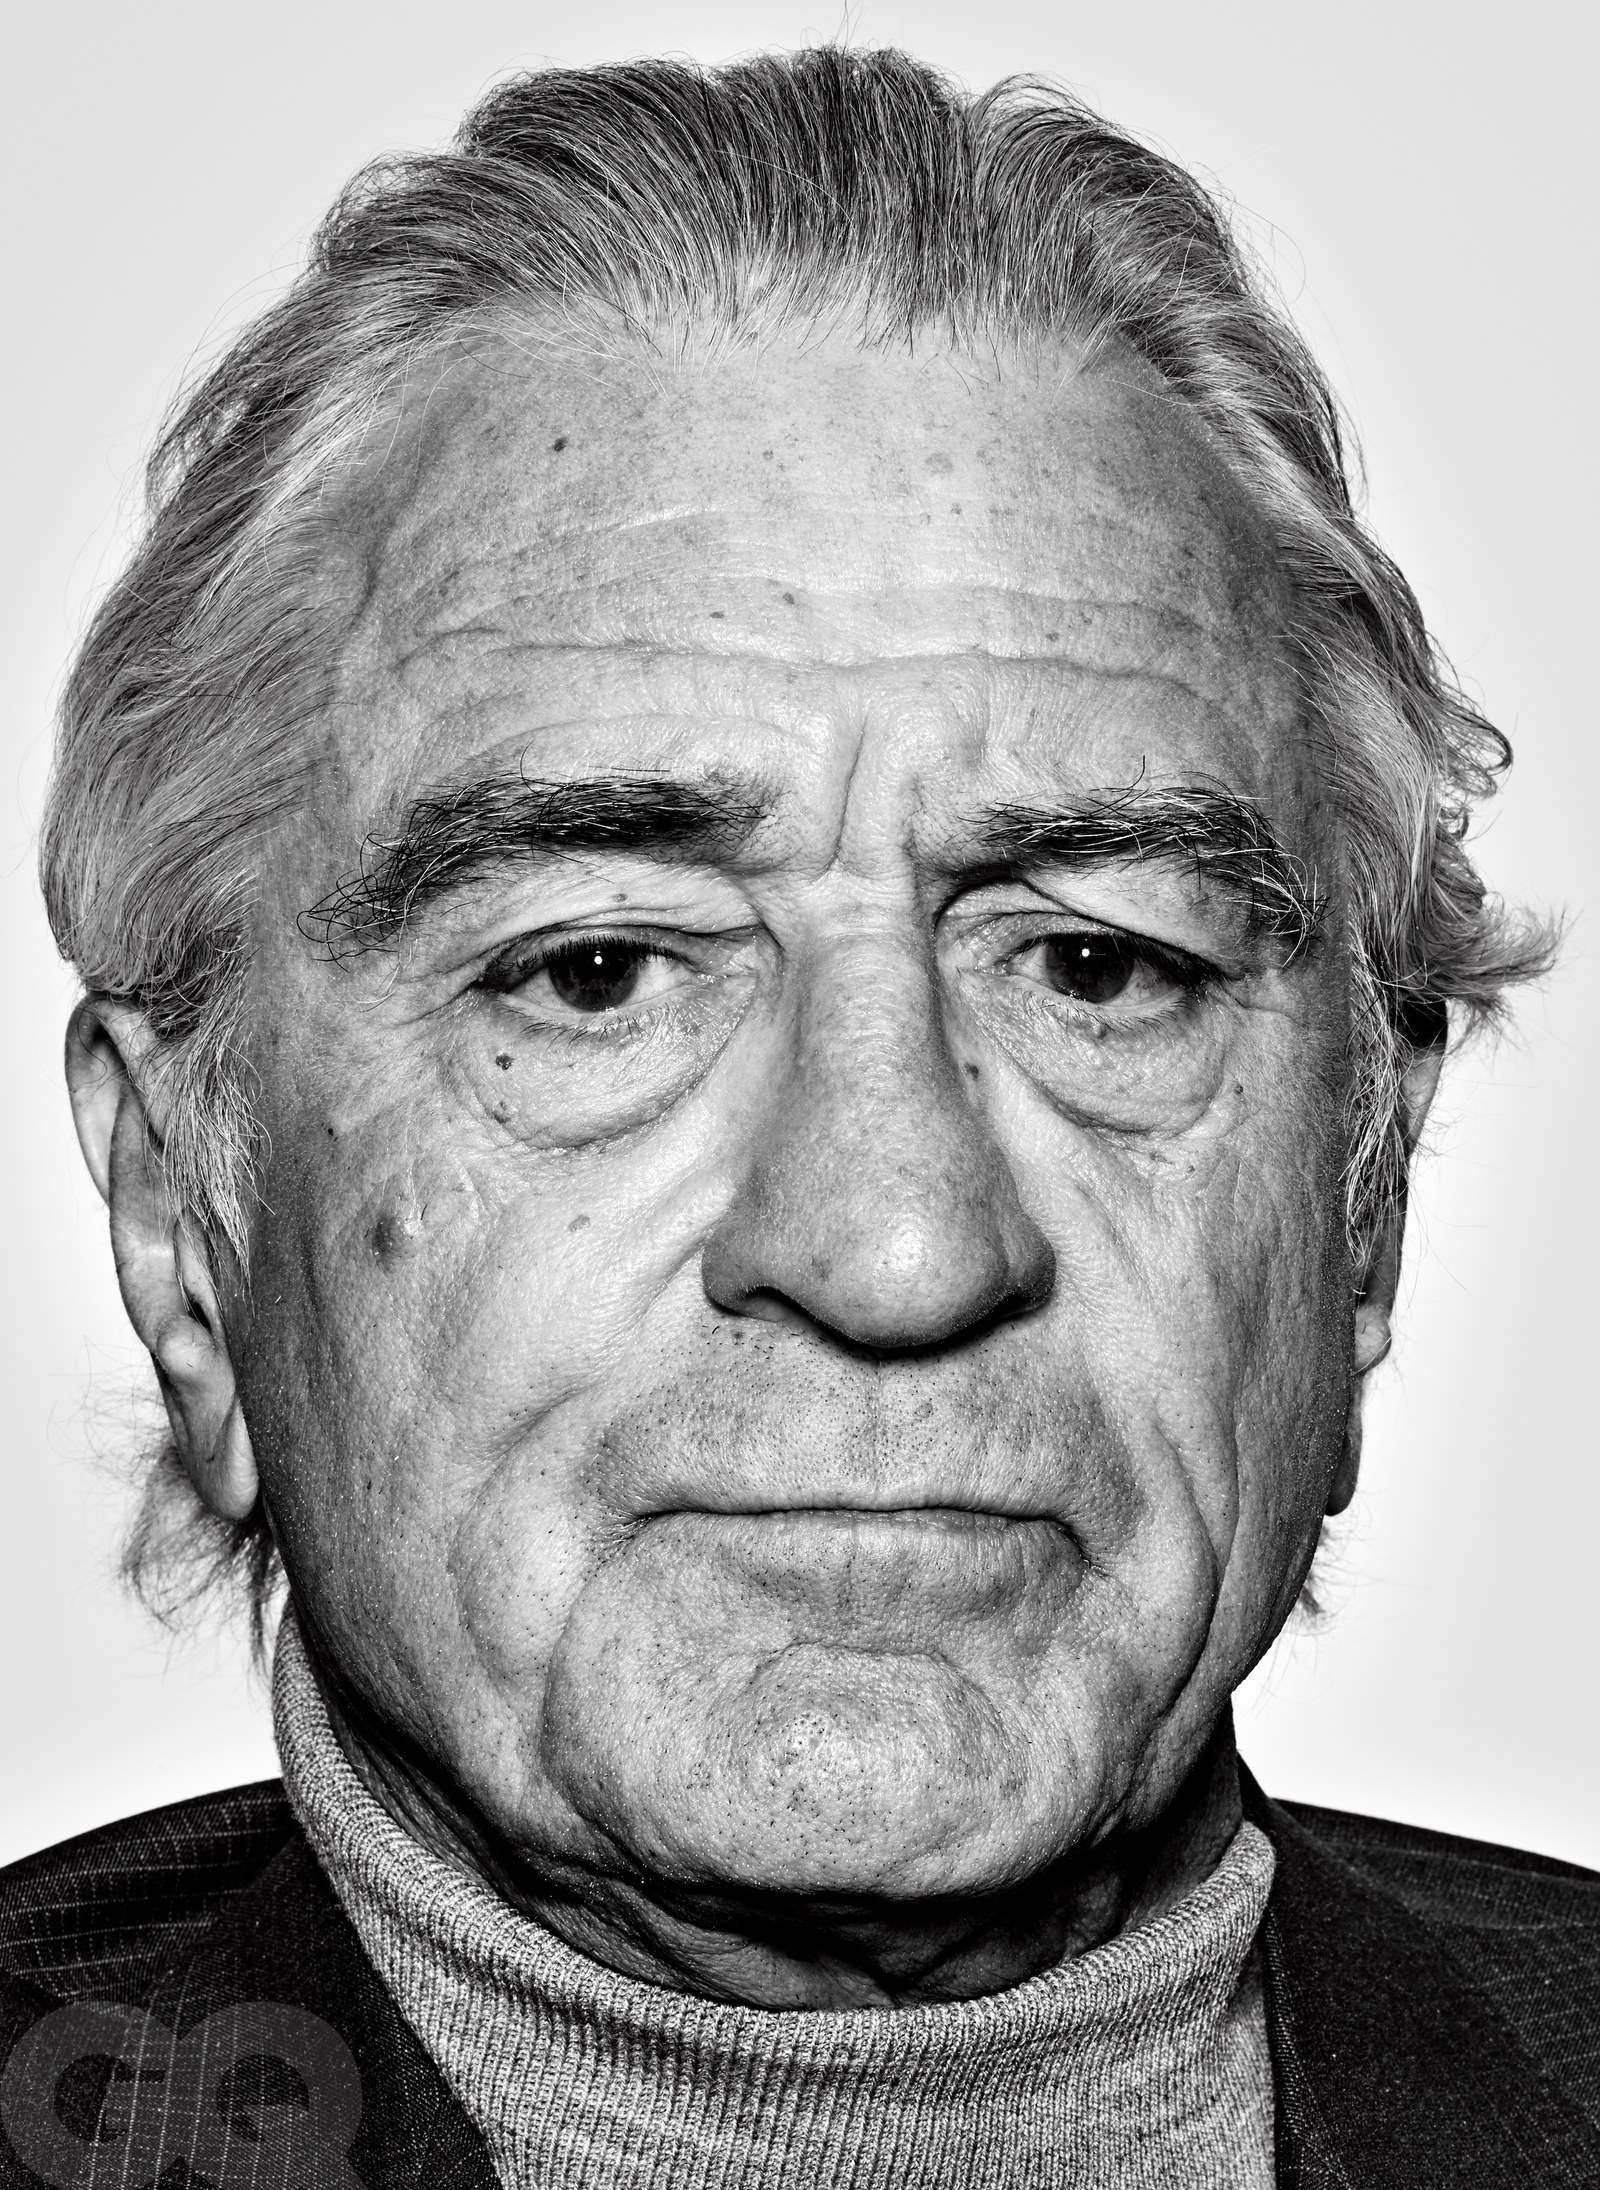 robert-de-niro-gq-men-of-the-year-2019-02